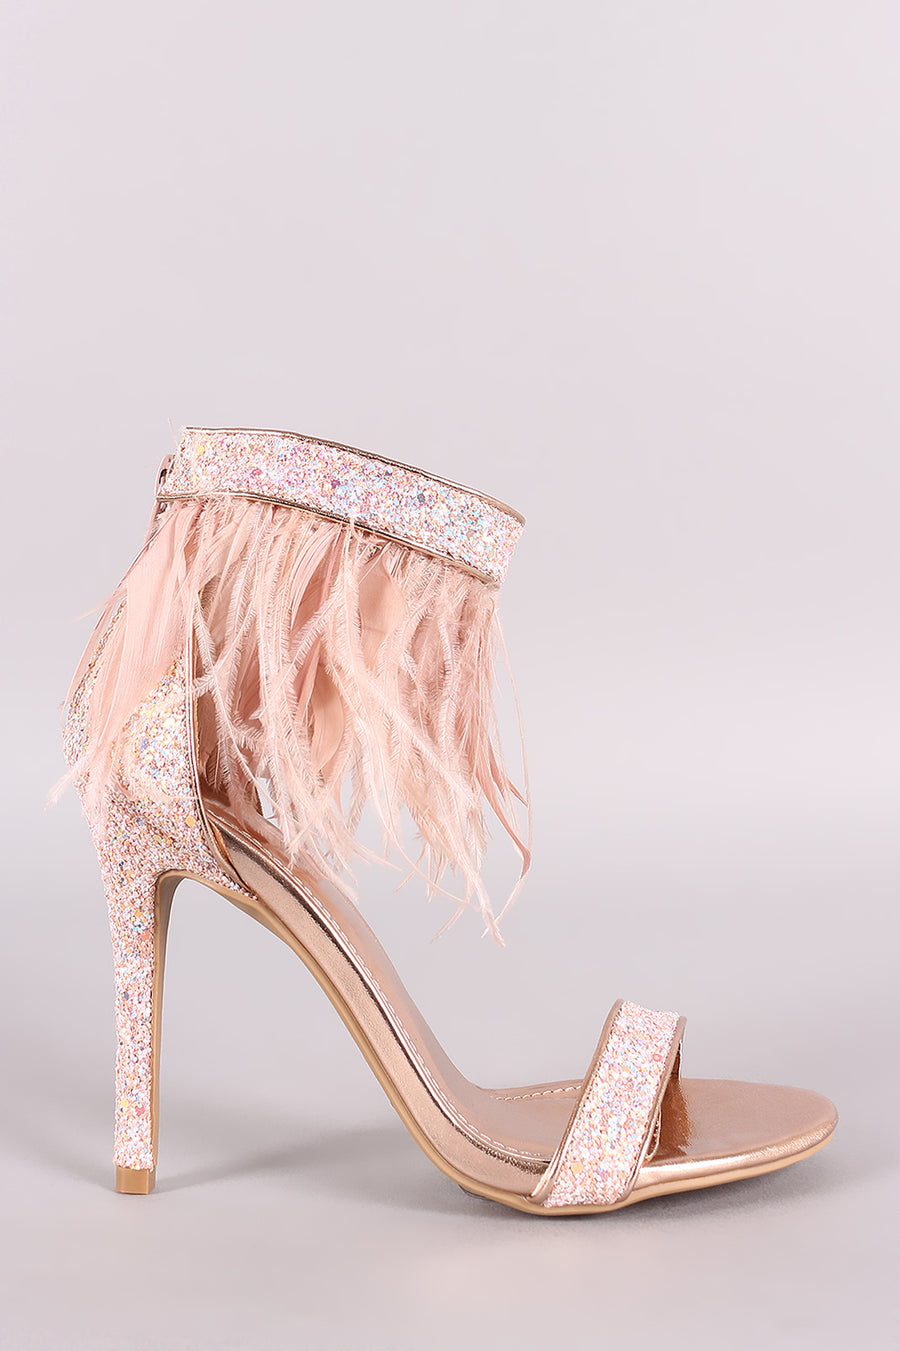 Shoe Republic LA Glitter Encrusted Open Toe Feather Stiletto Heel